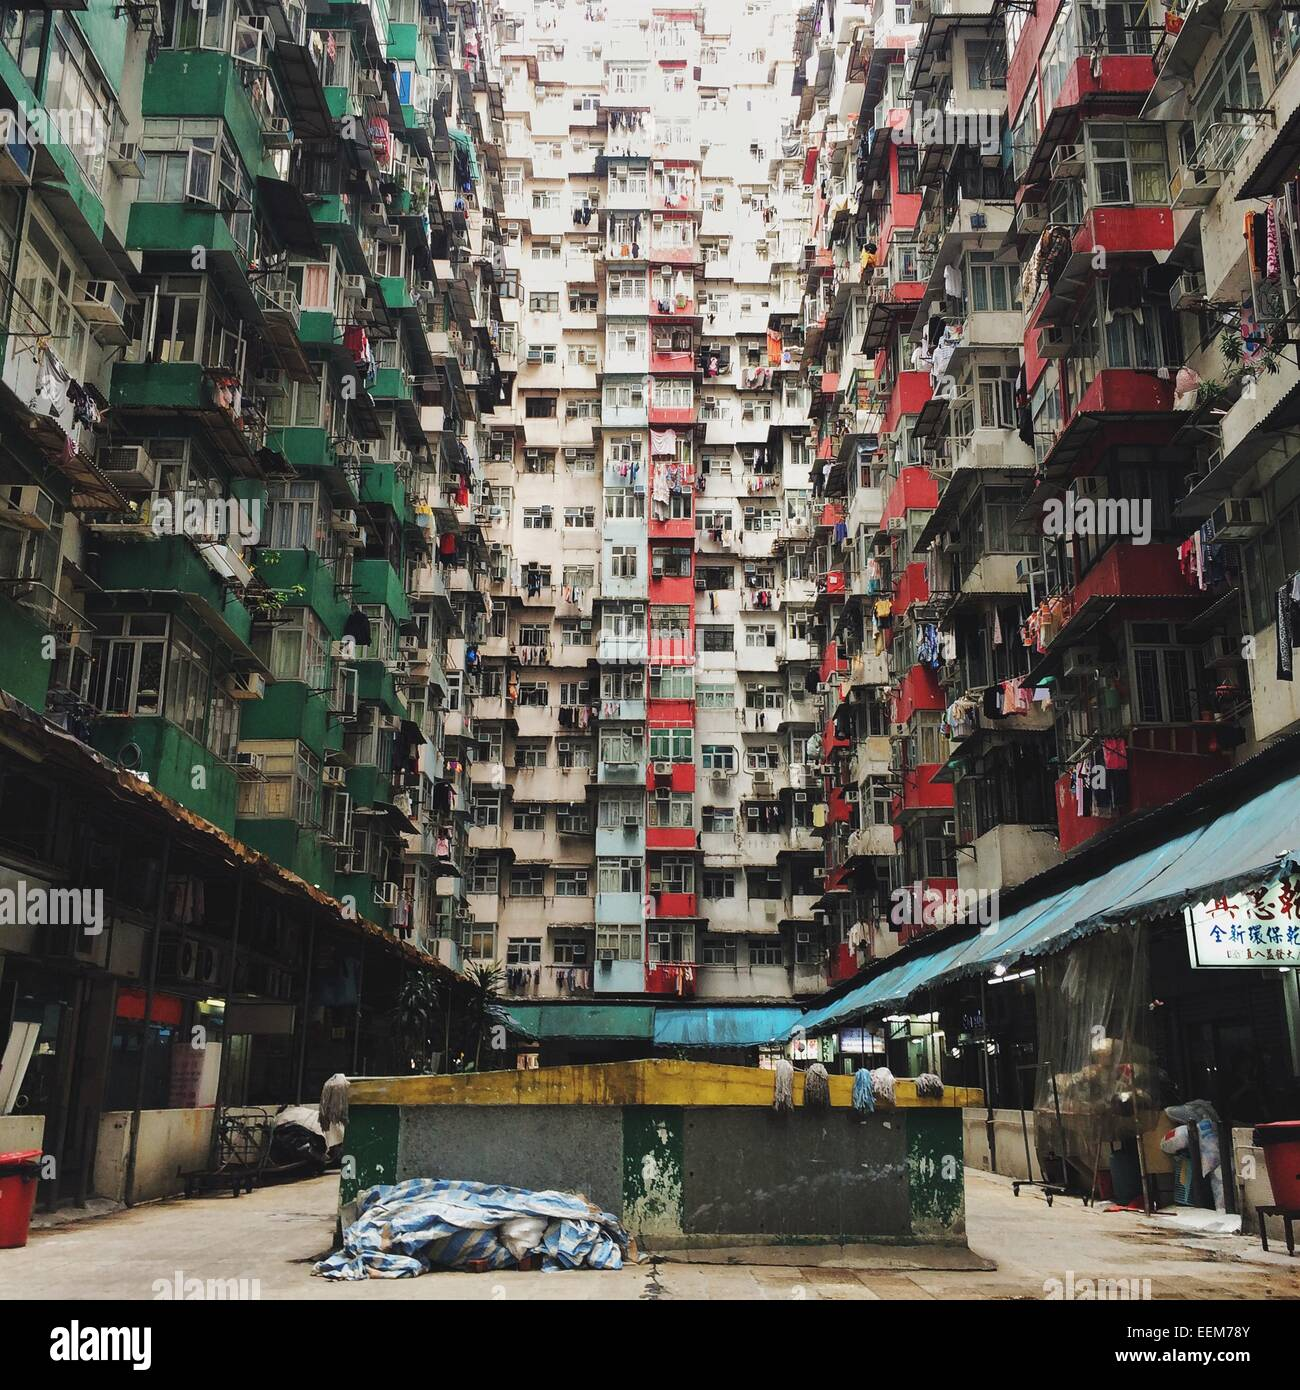 Hong Kong Apartments: China, Hong Kong, View Of Apartment Building Stock Photo